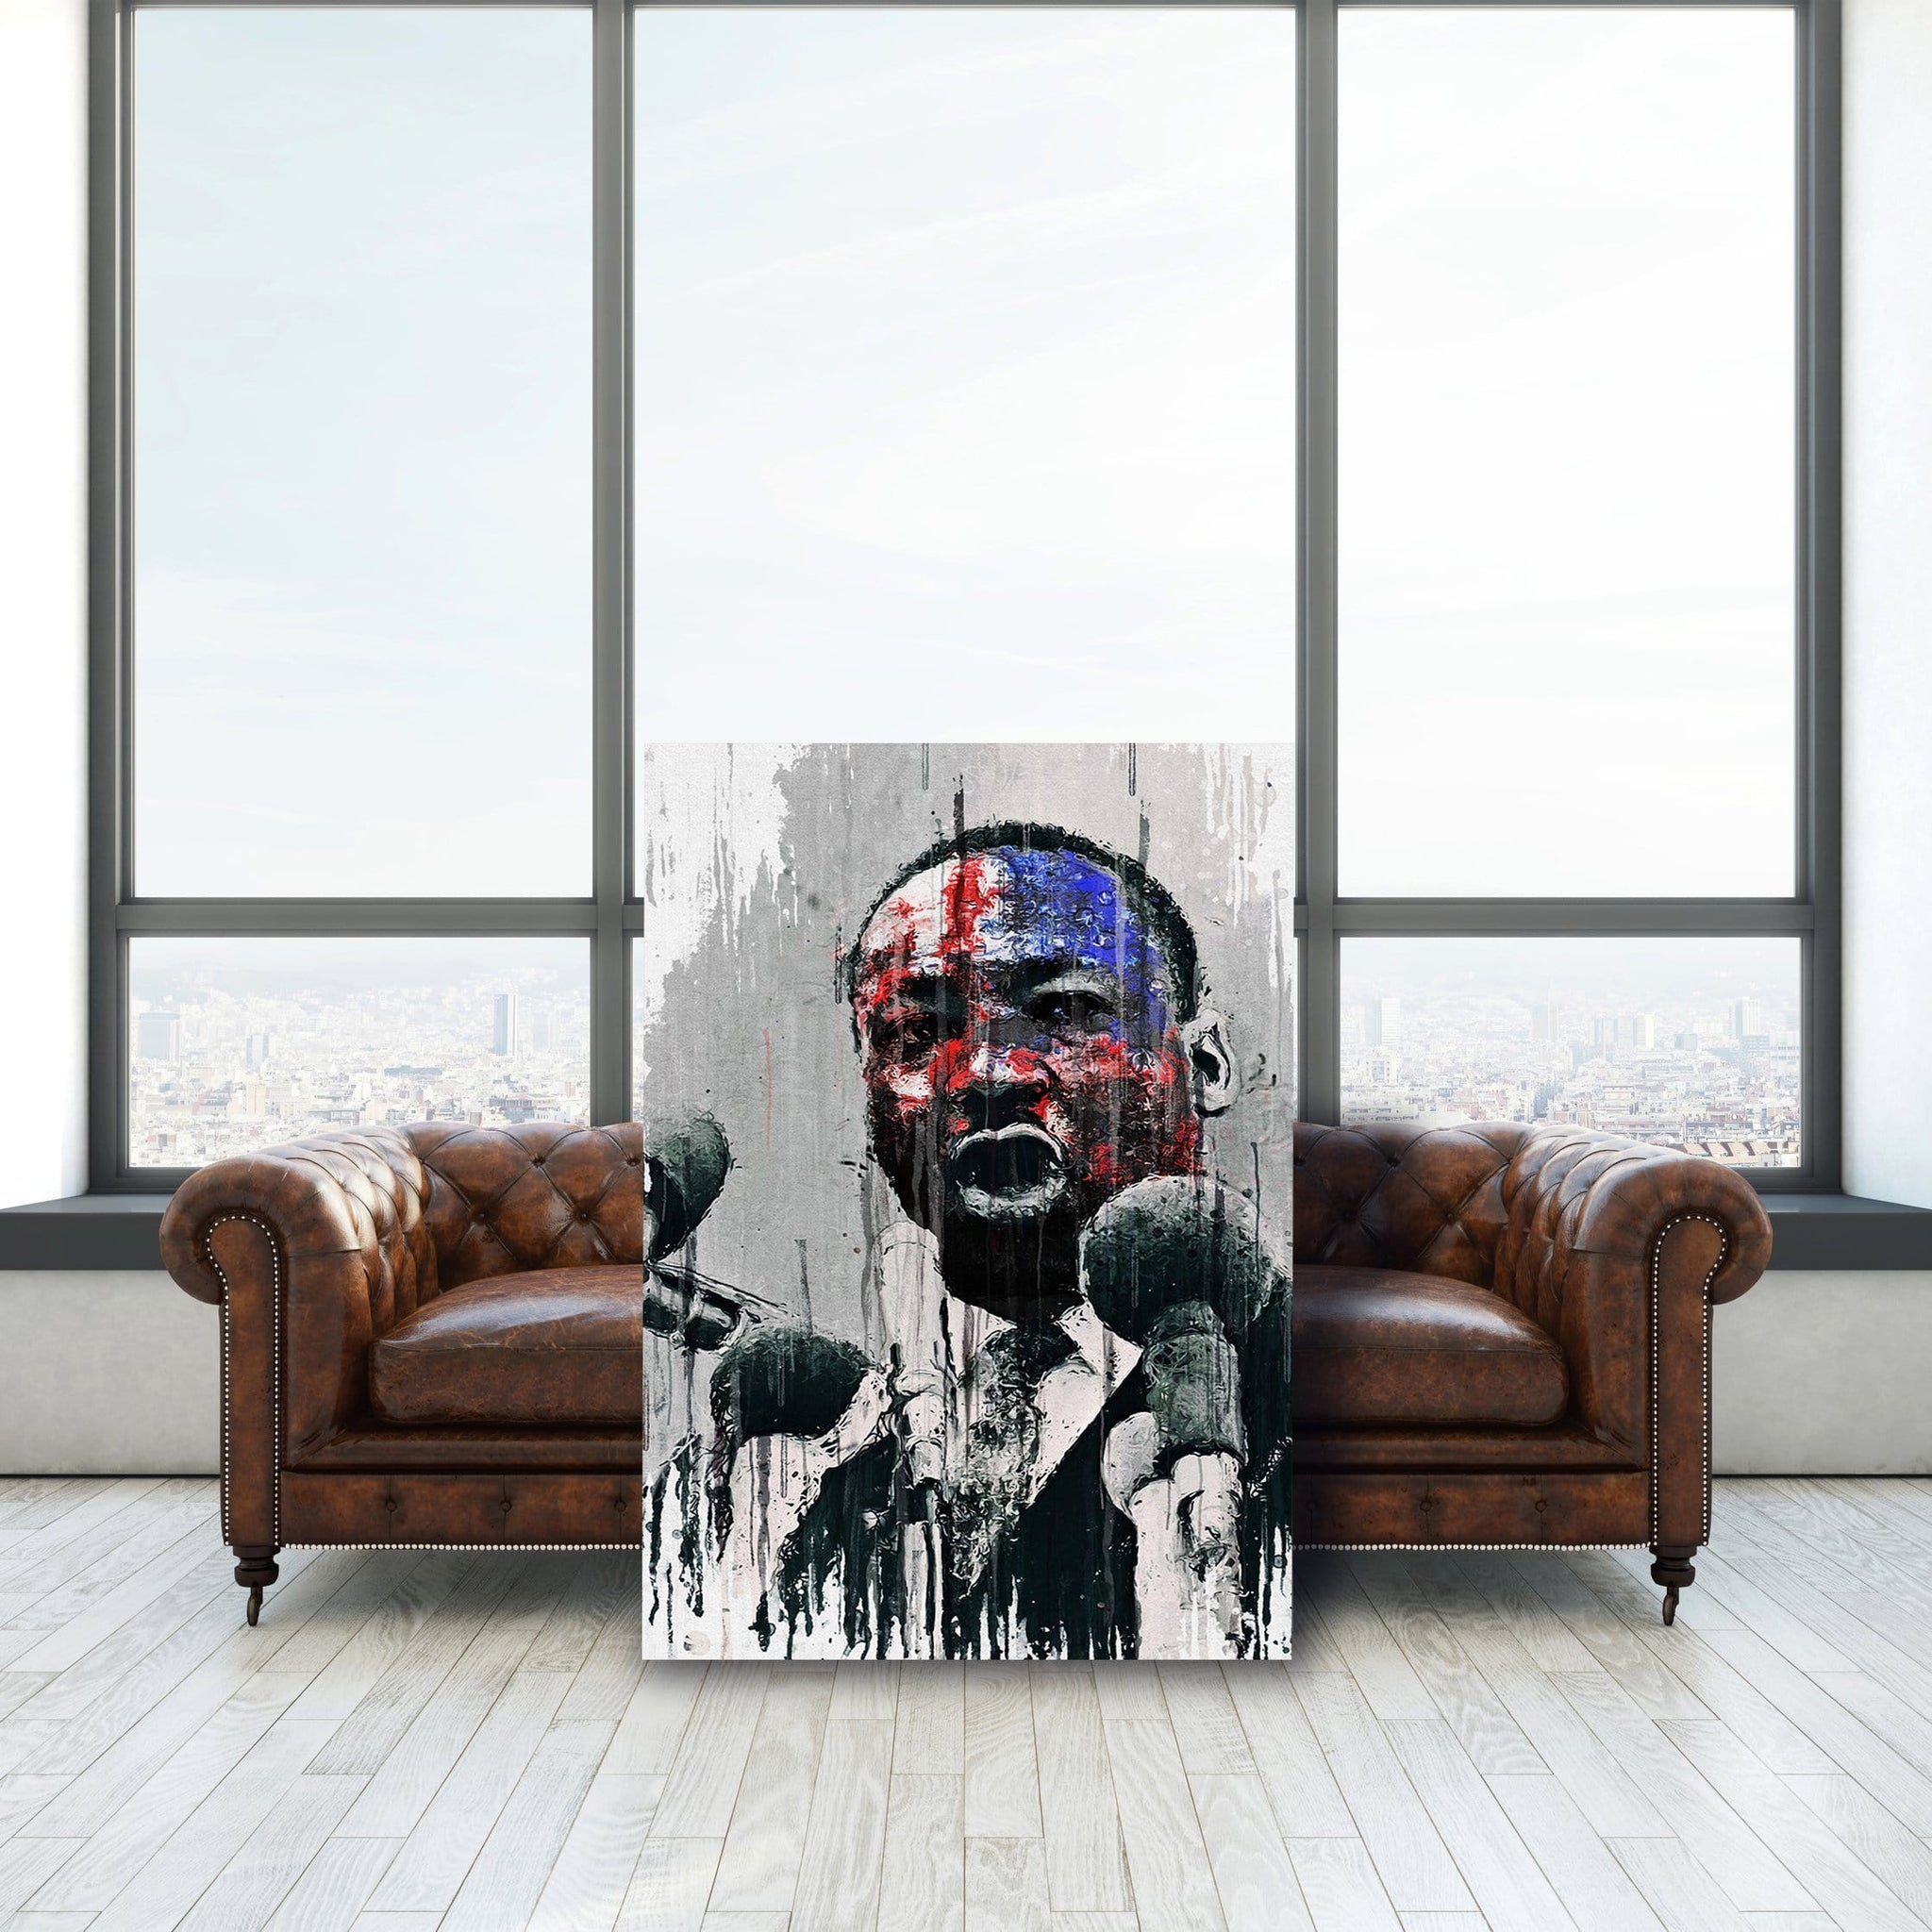 Martin Luther King American Flag - Framed Canvas Painting Wall Art Office Decor, large modern pop artwork for home or office, Entrepreneur Inspirational and motivational Quotes on Canvas great for man cave or home. Perfect for Artwork Addicts. Made in USA, FREE Shipping.